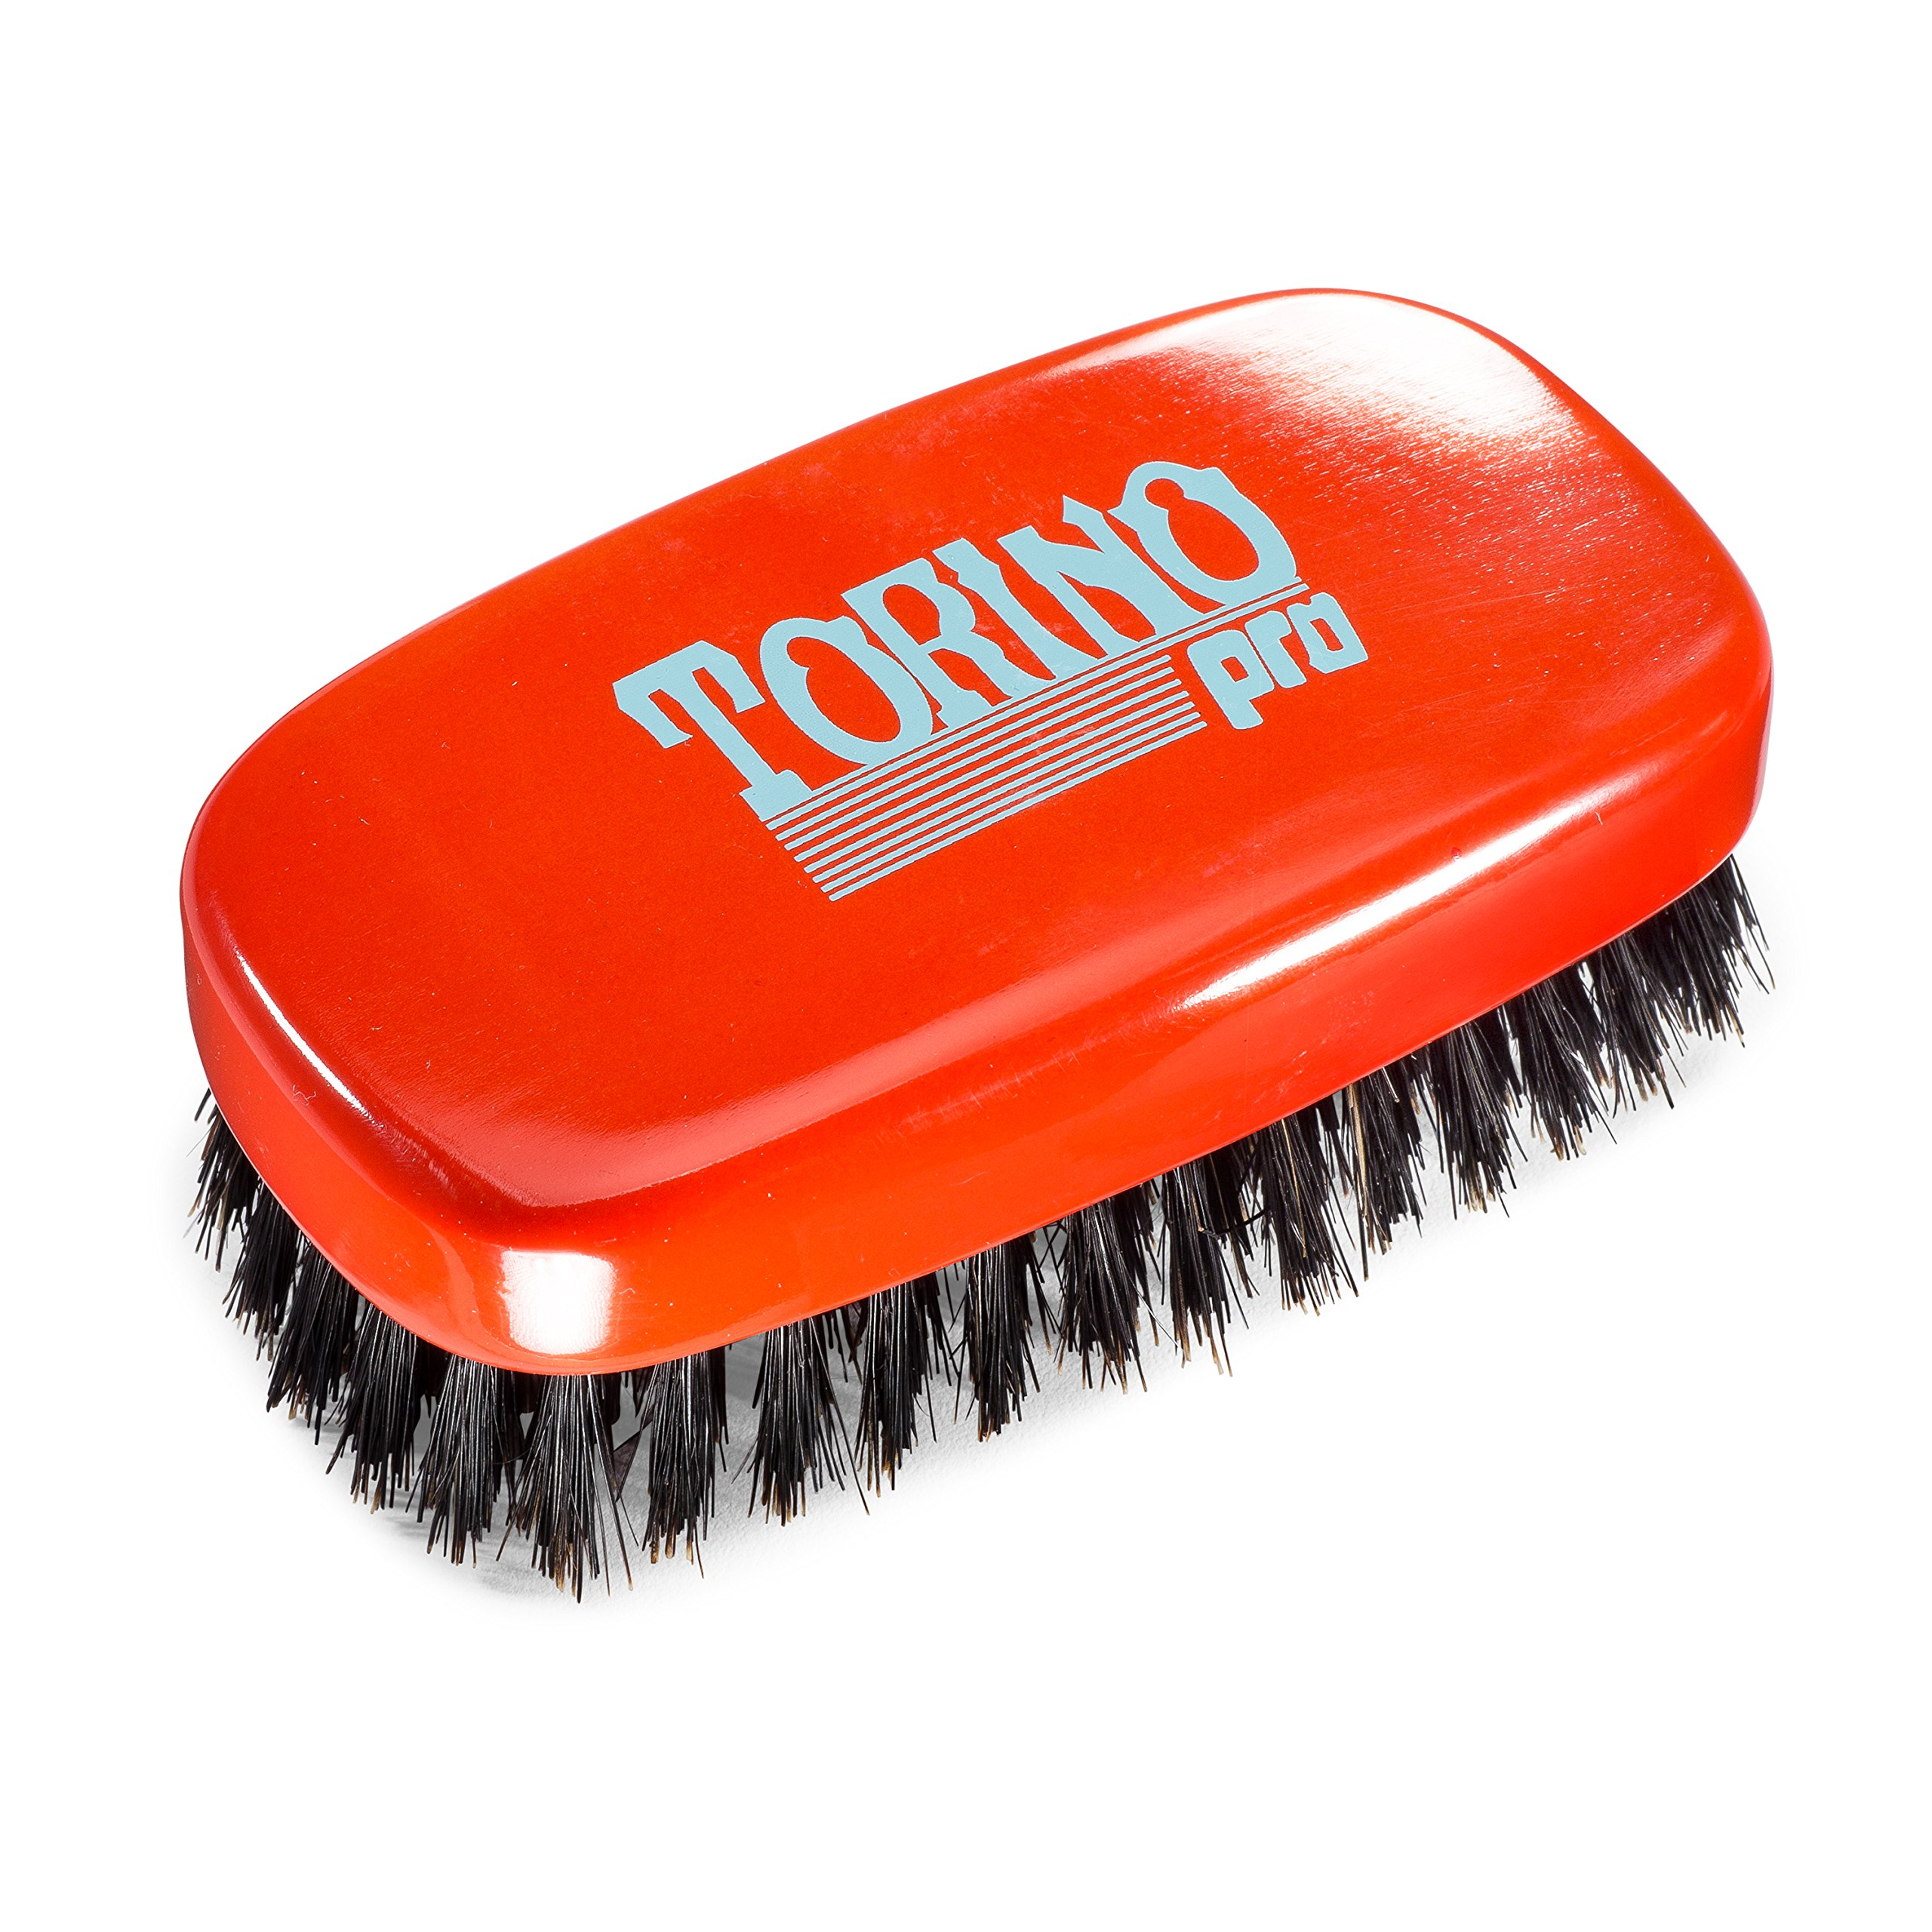 Torino Pro Wave Brush #760 By Brush King - 11 Row Medium 360 Waves Palm Brush